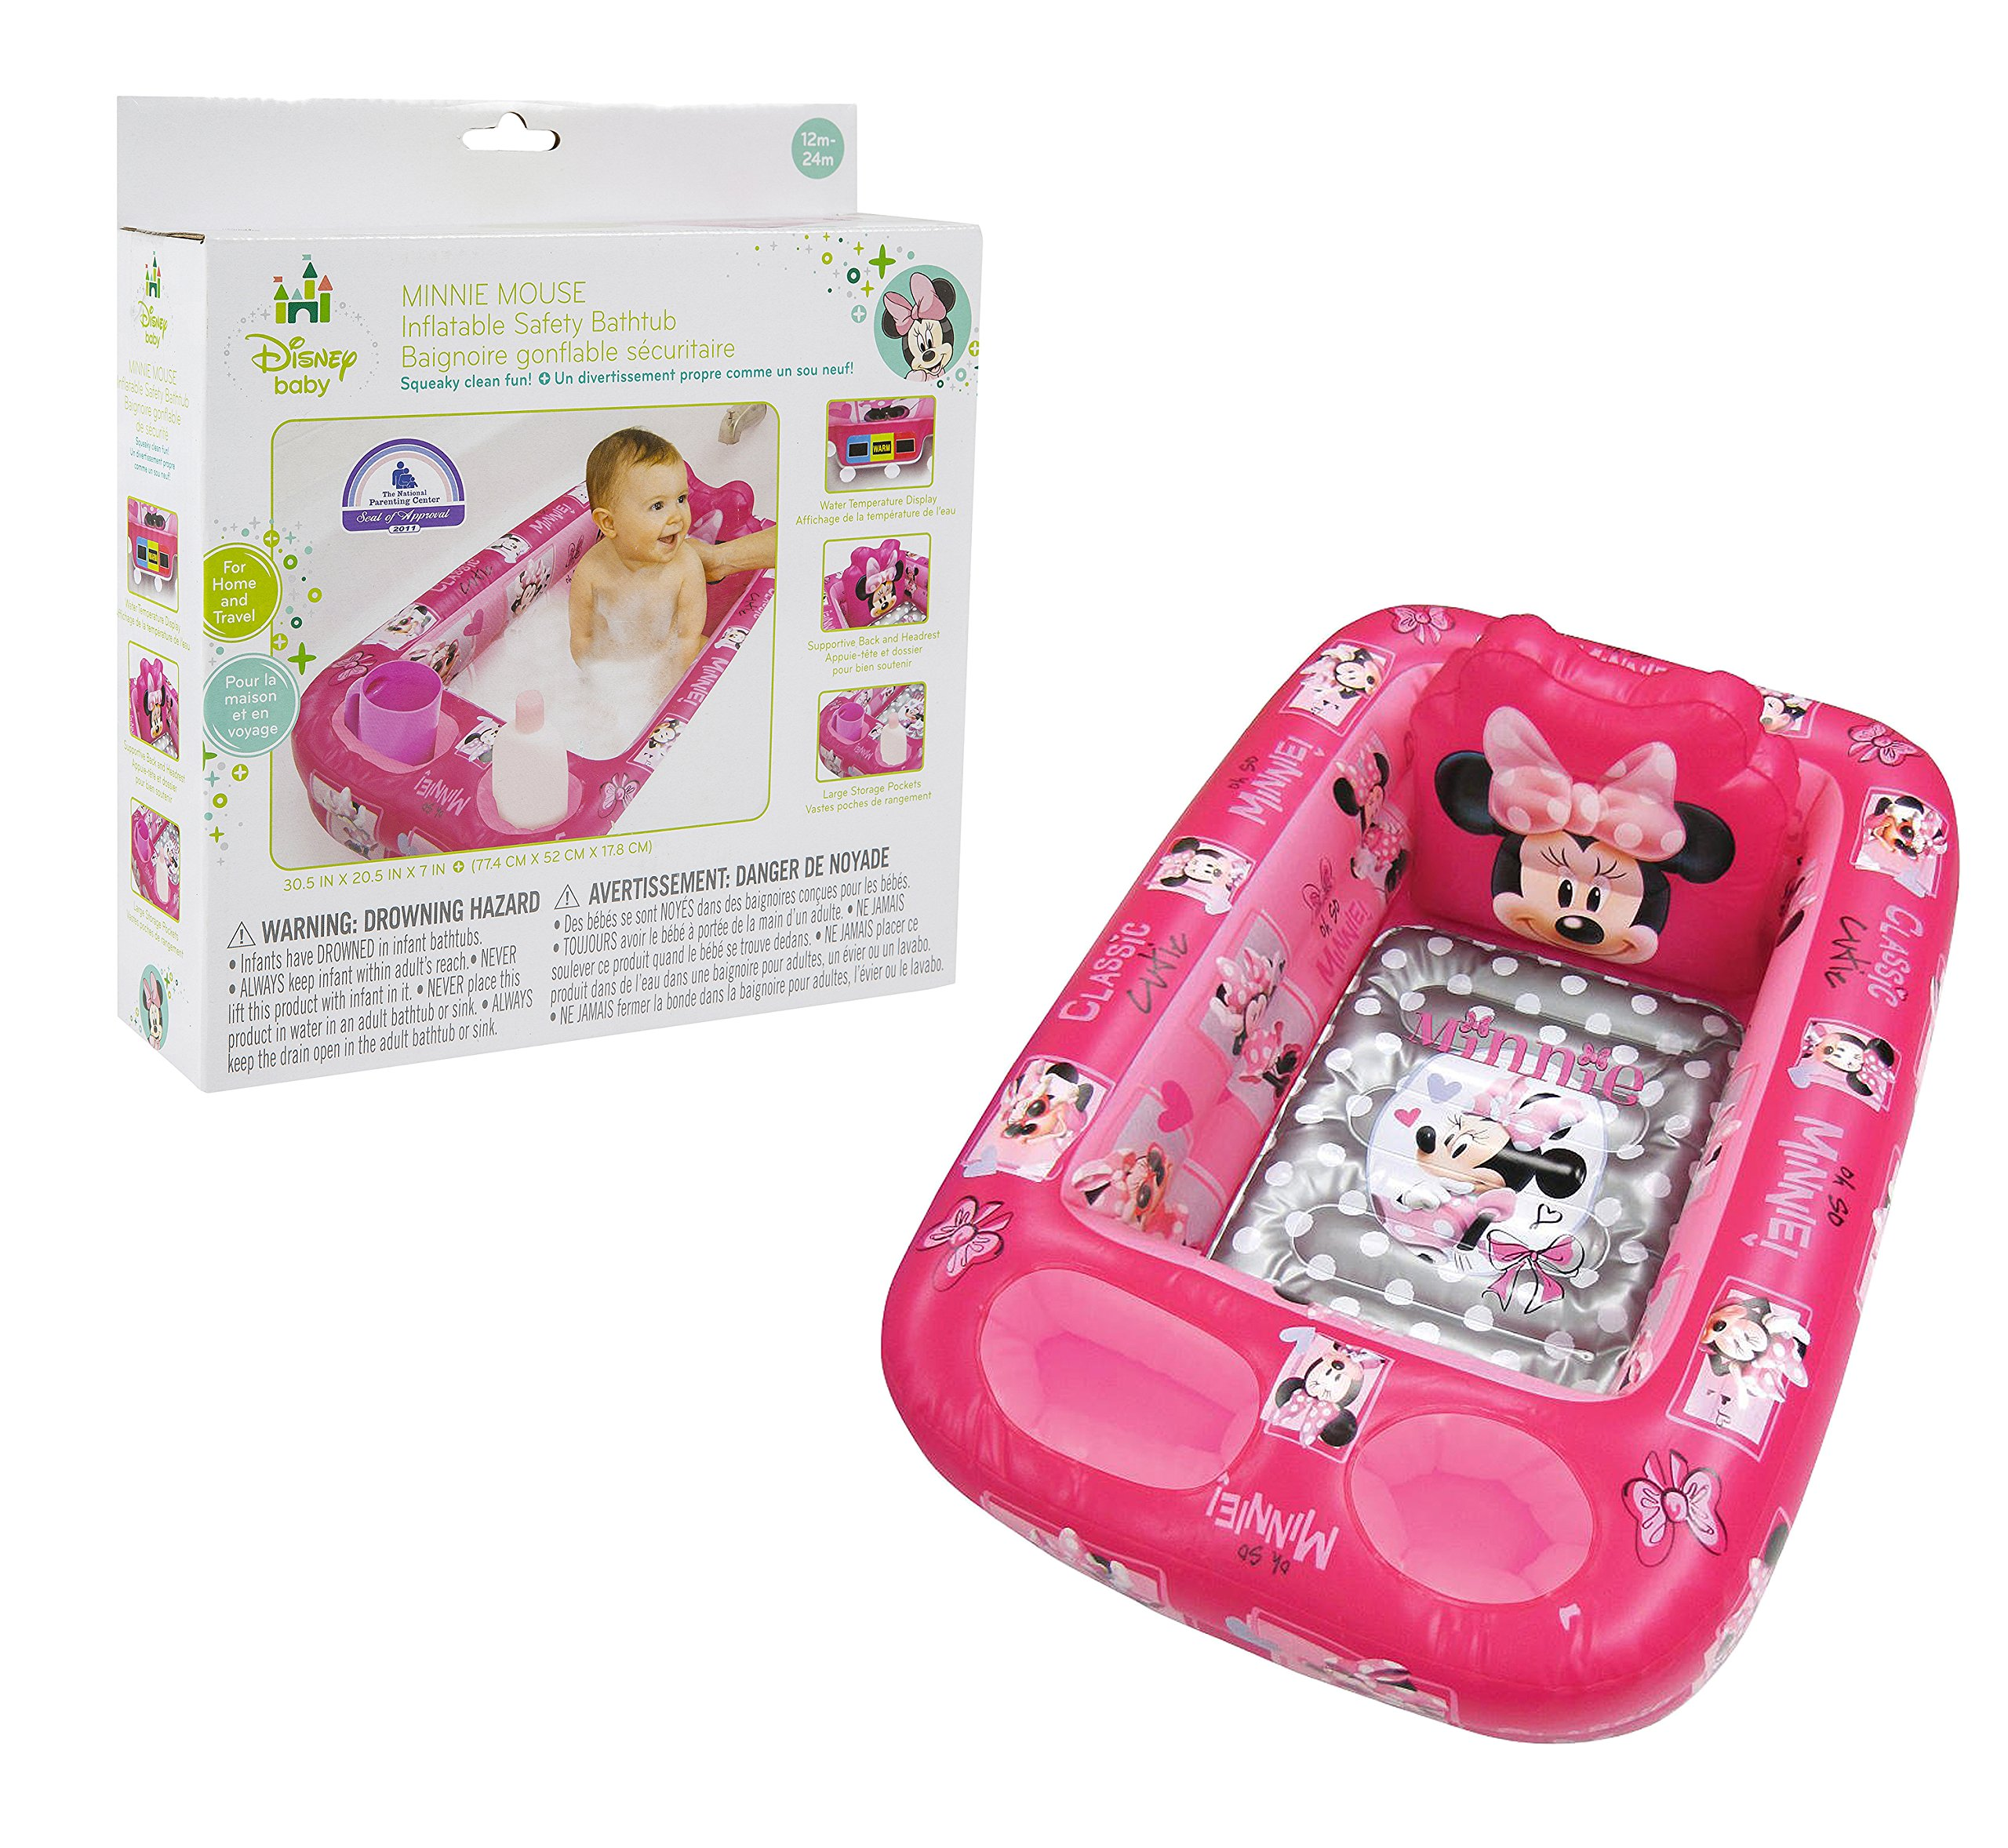 Disney Minnie Mouse Inflatable Safety Bathtub Pink | eBay